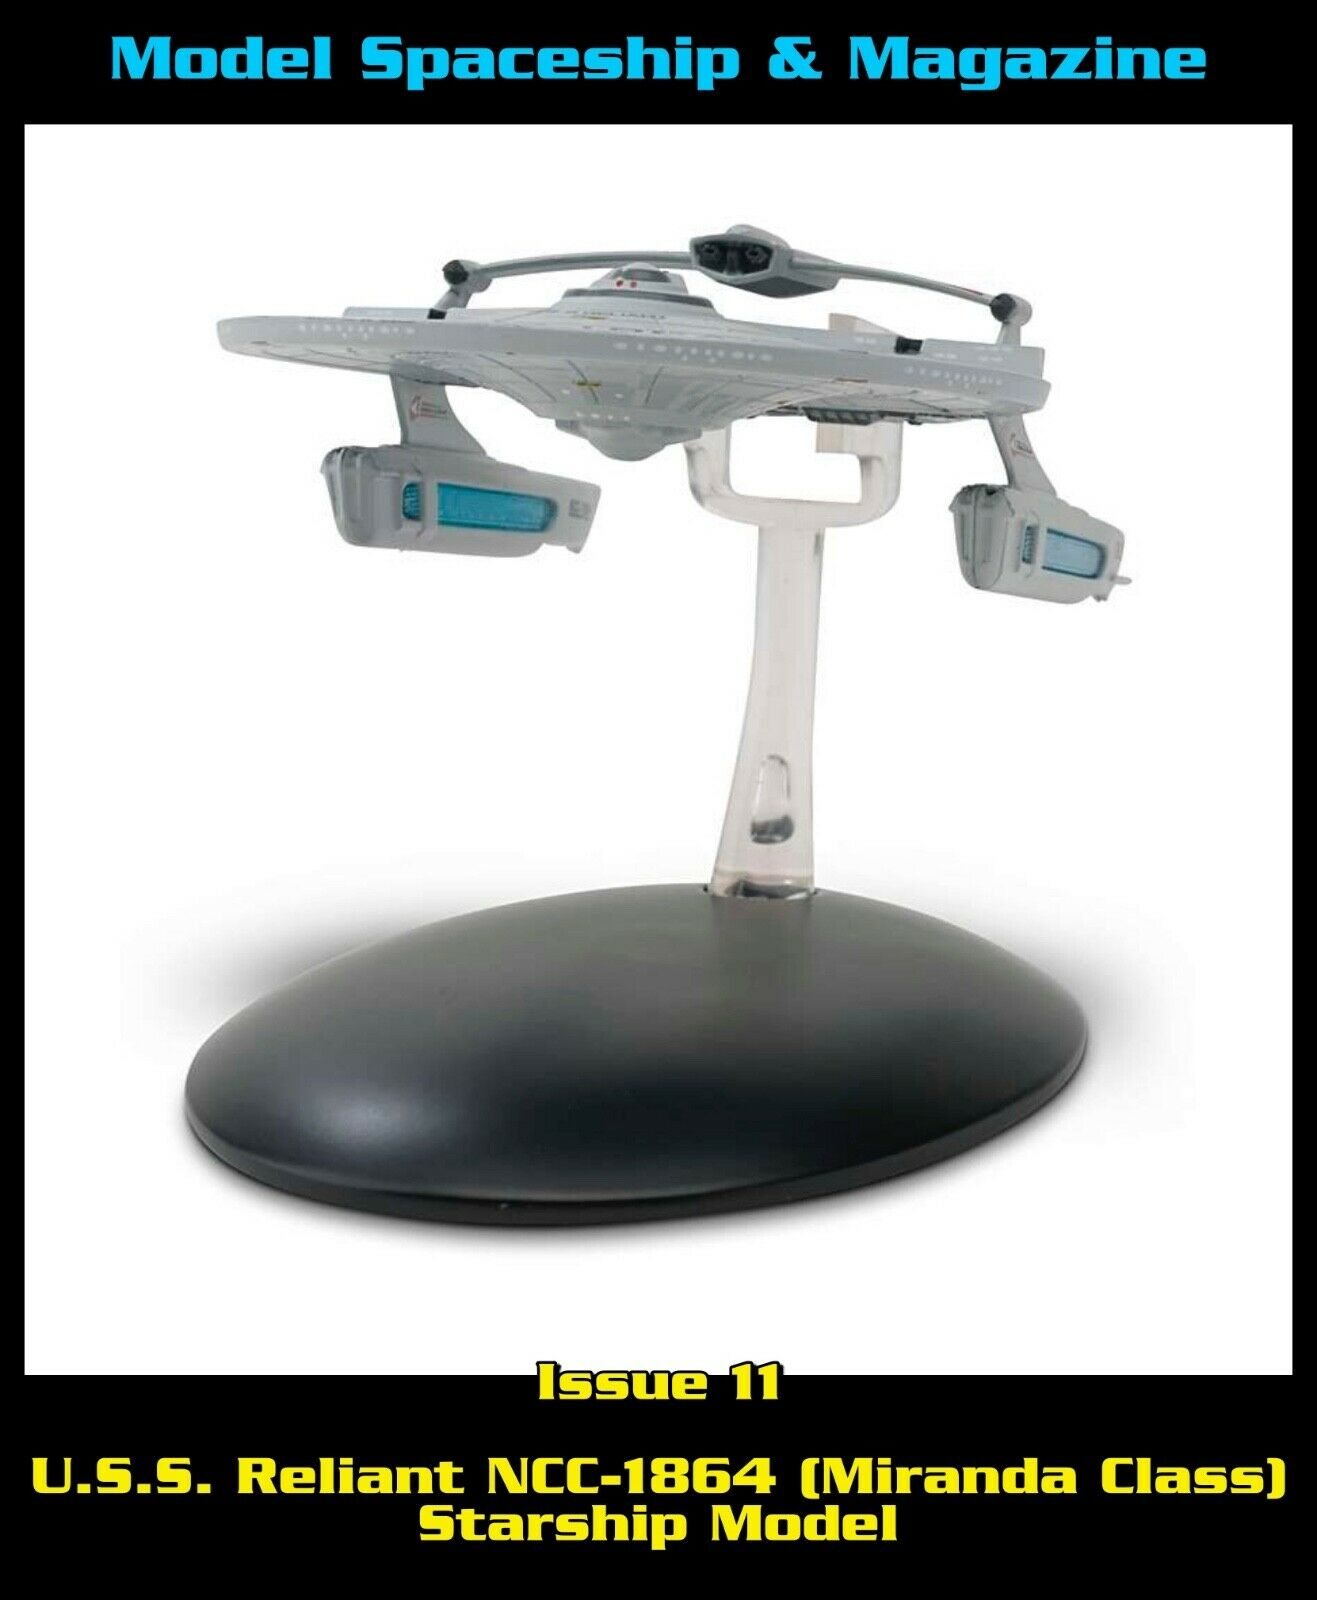 Issue 11: U.S.S. Reliant NCC-1864